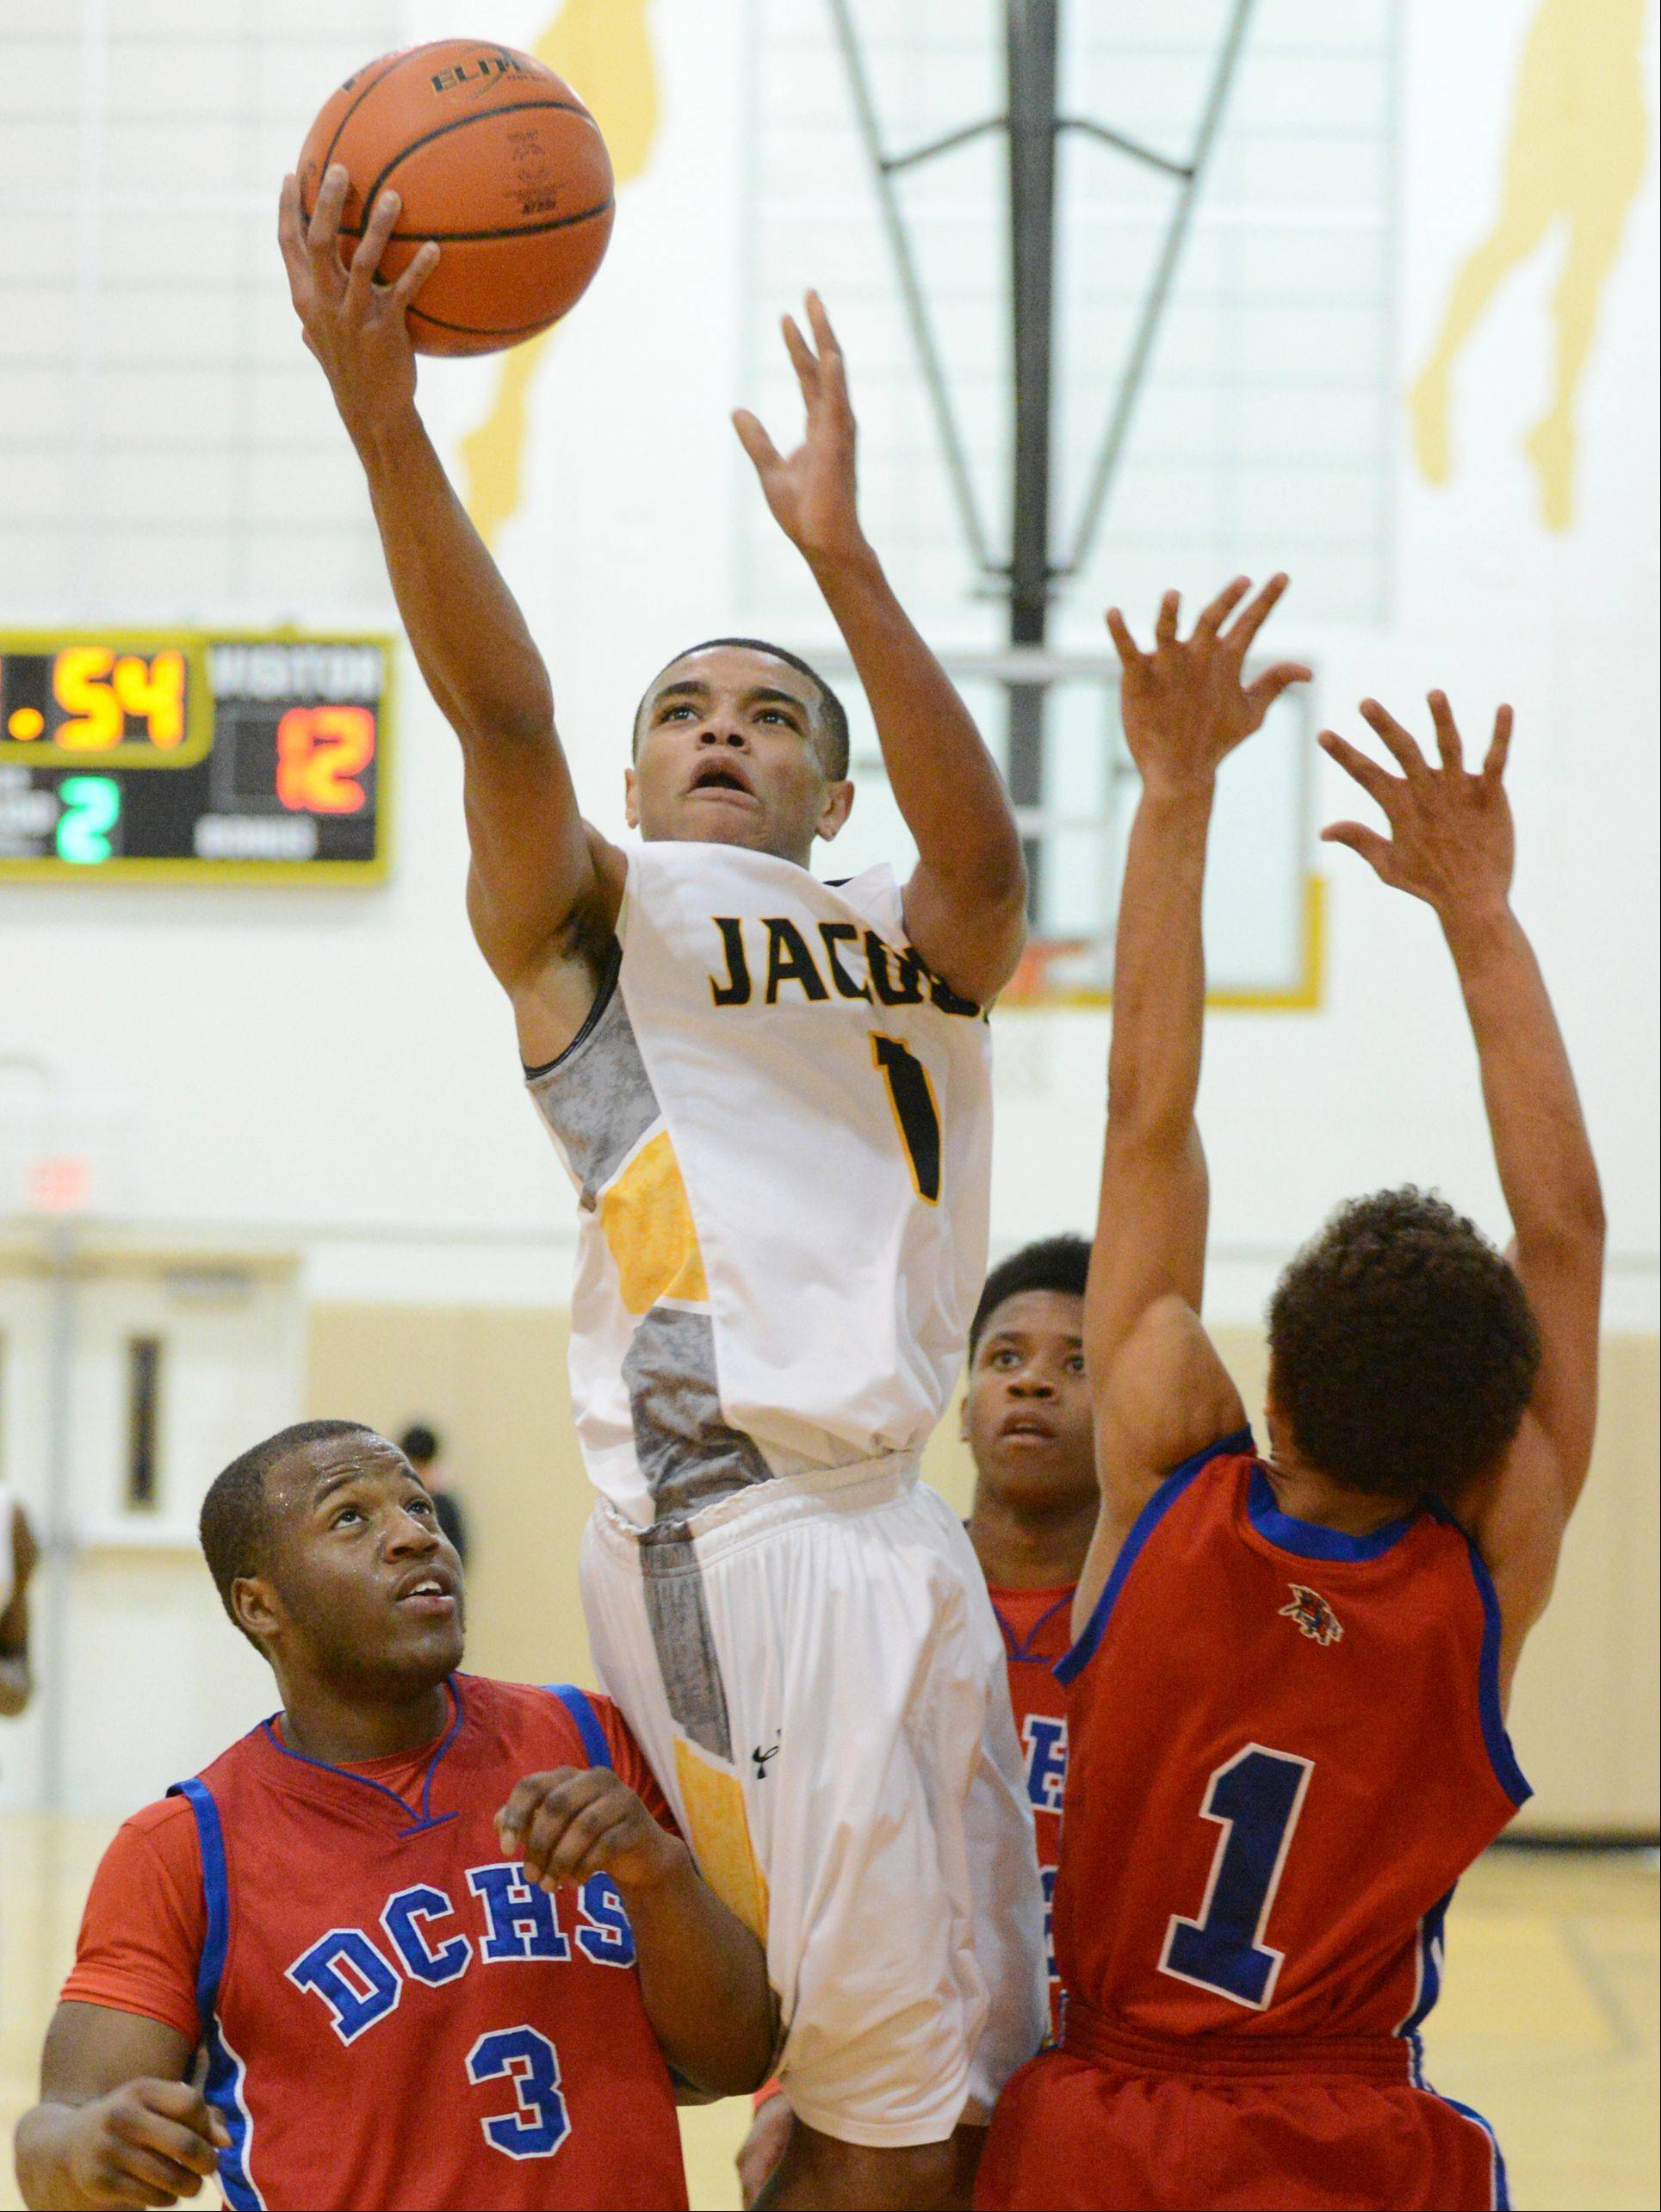 Kenton Mack of Jacobs glides between three Dundee-Crown defenders en route to a layup.